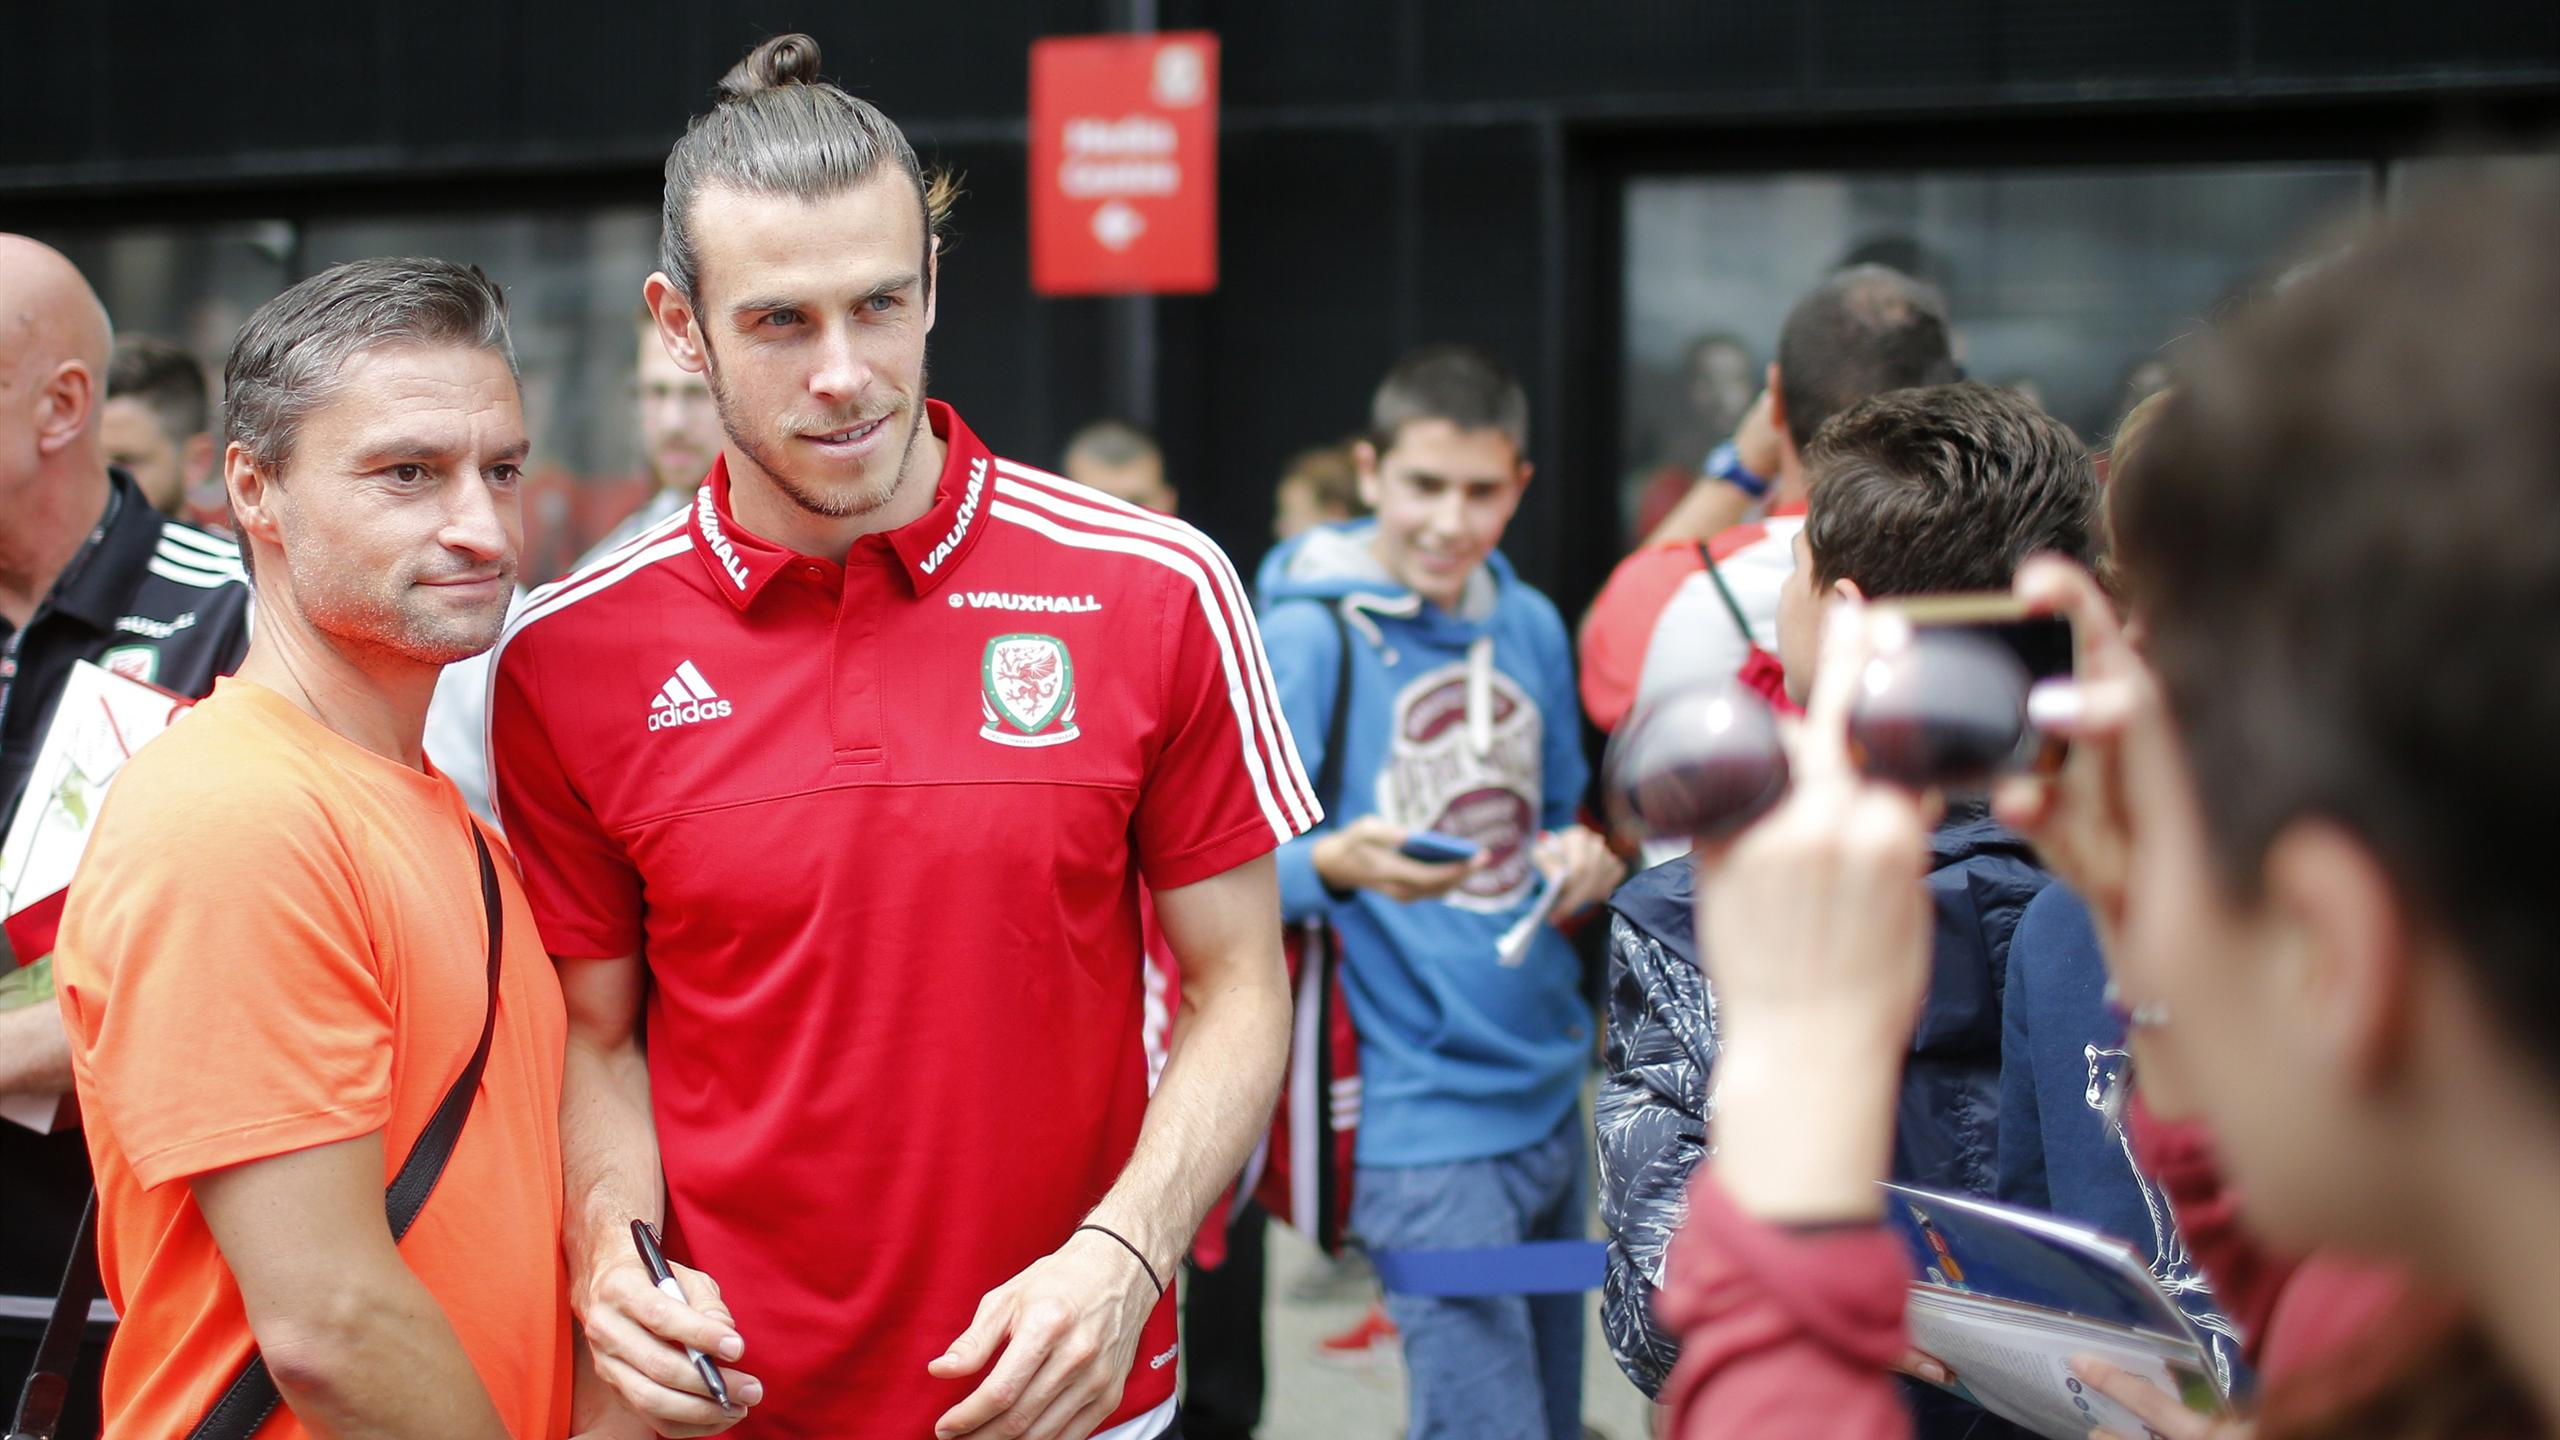 Wales' Gareth Bale poses after the news conference